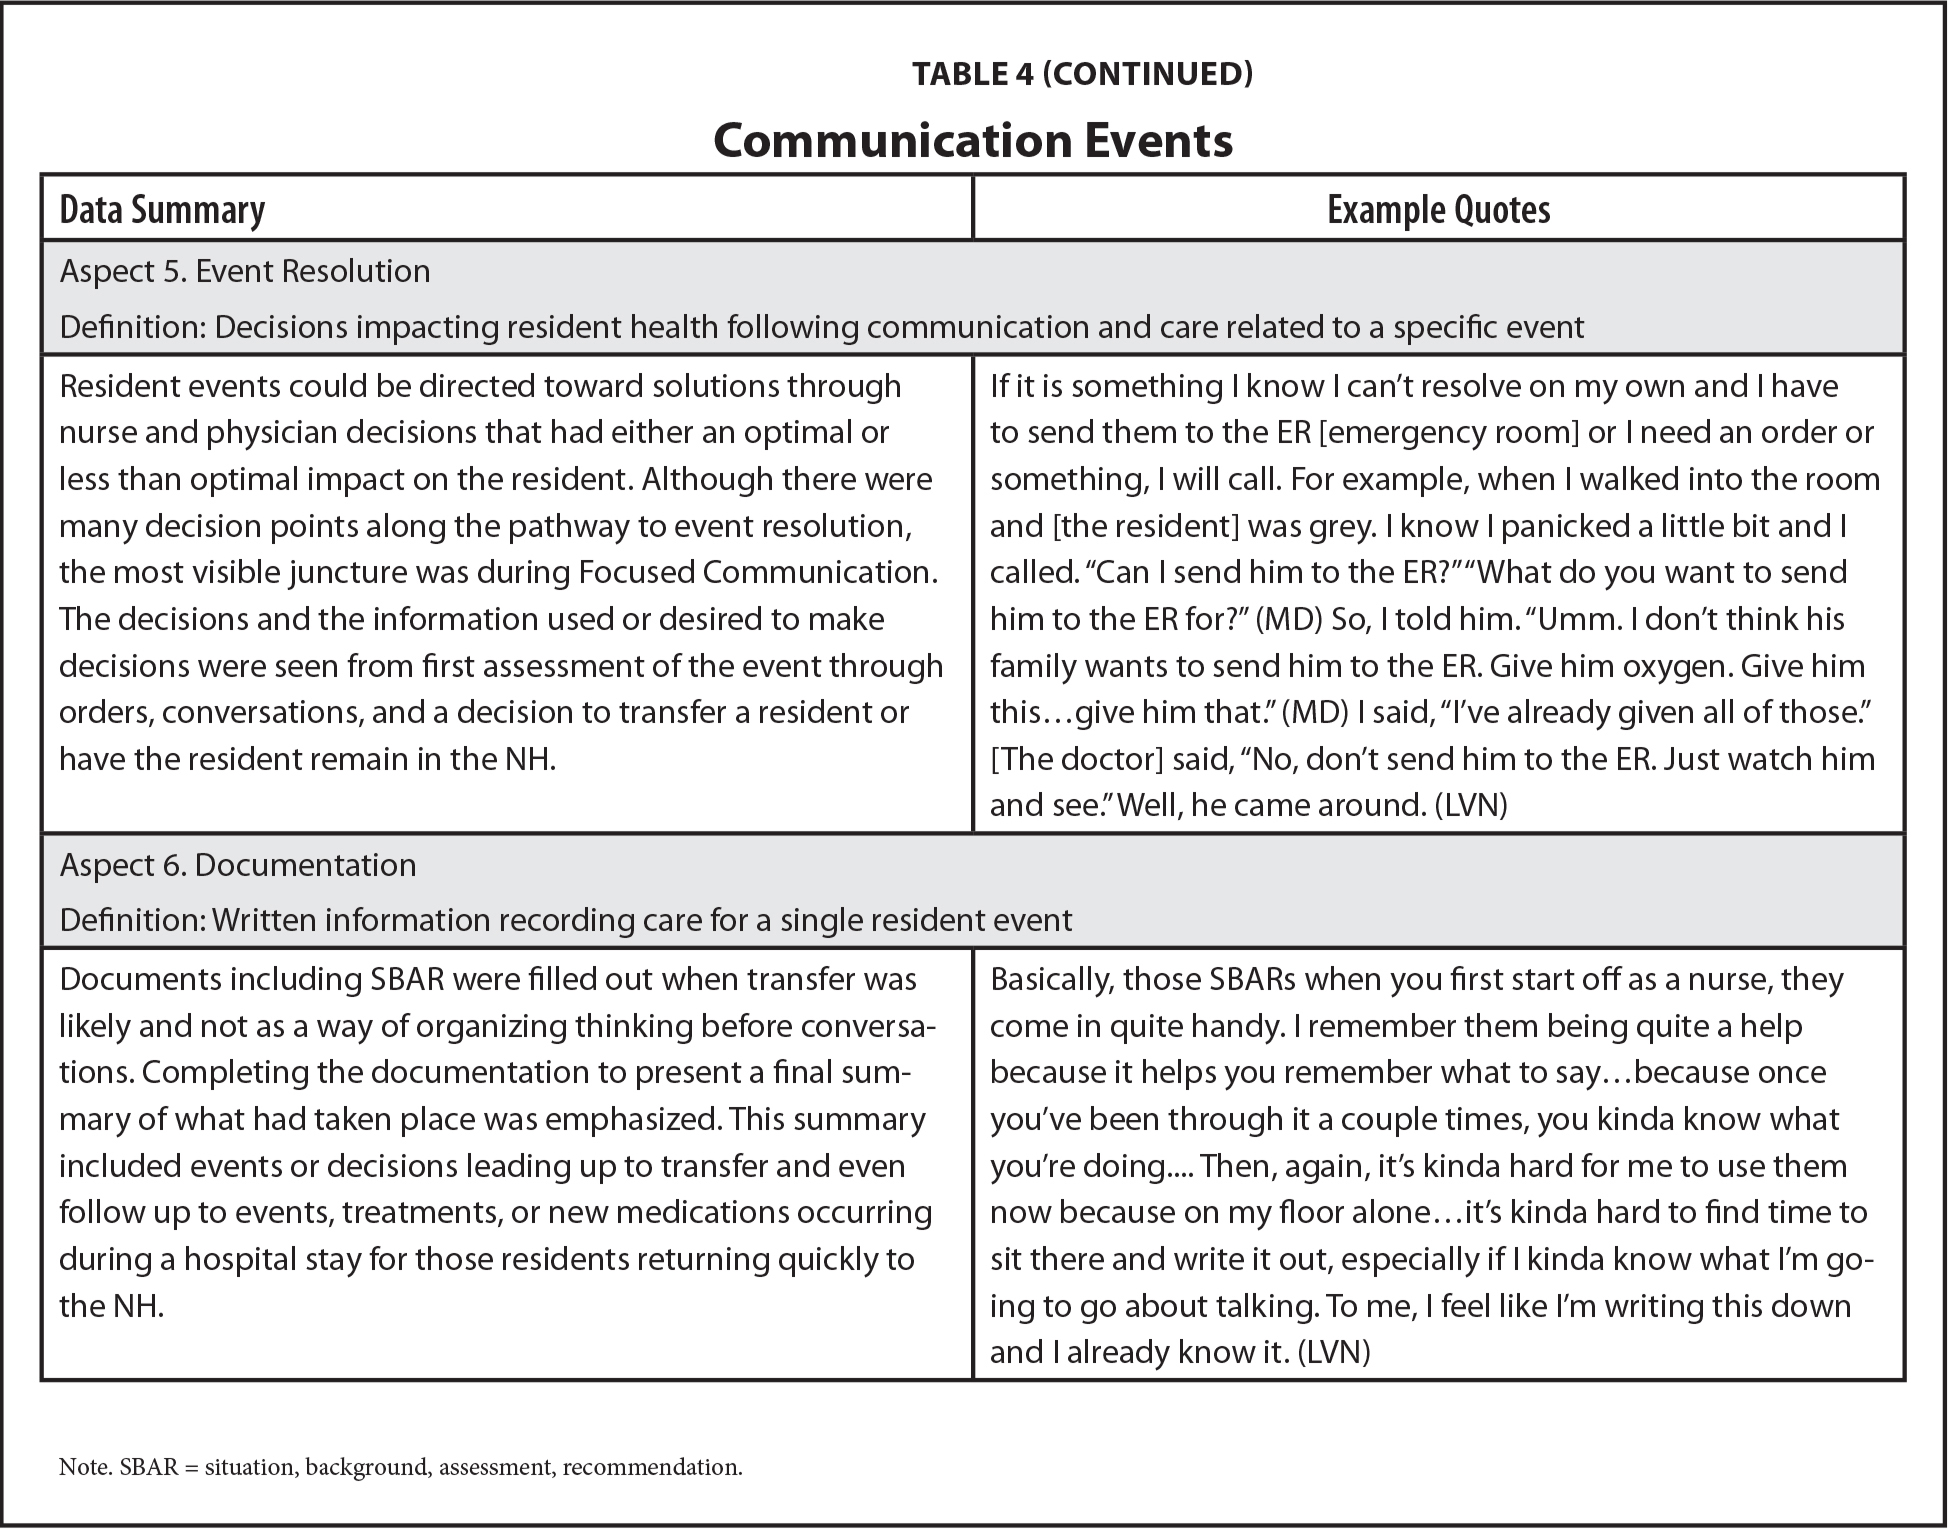 Communication Events